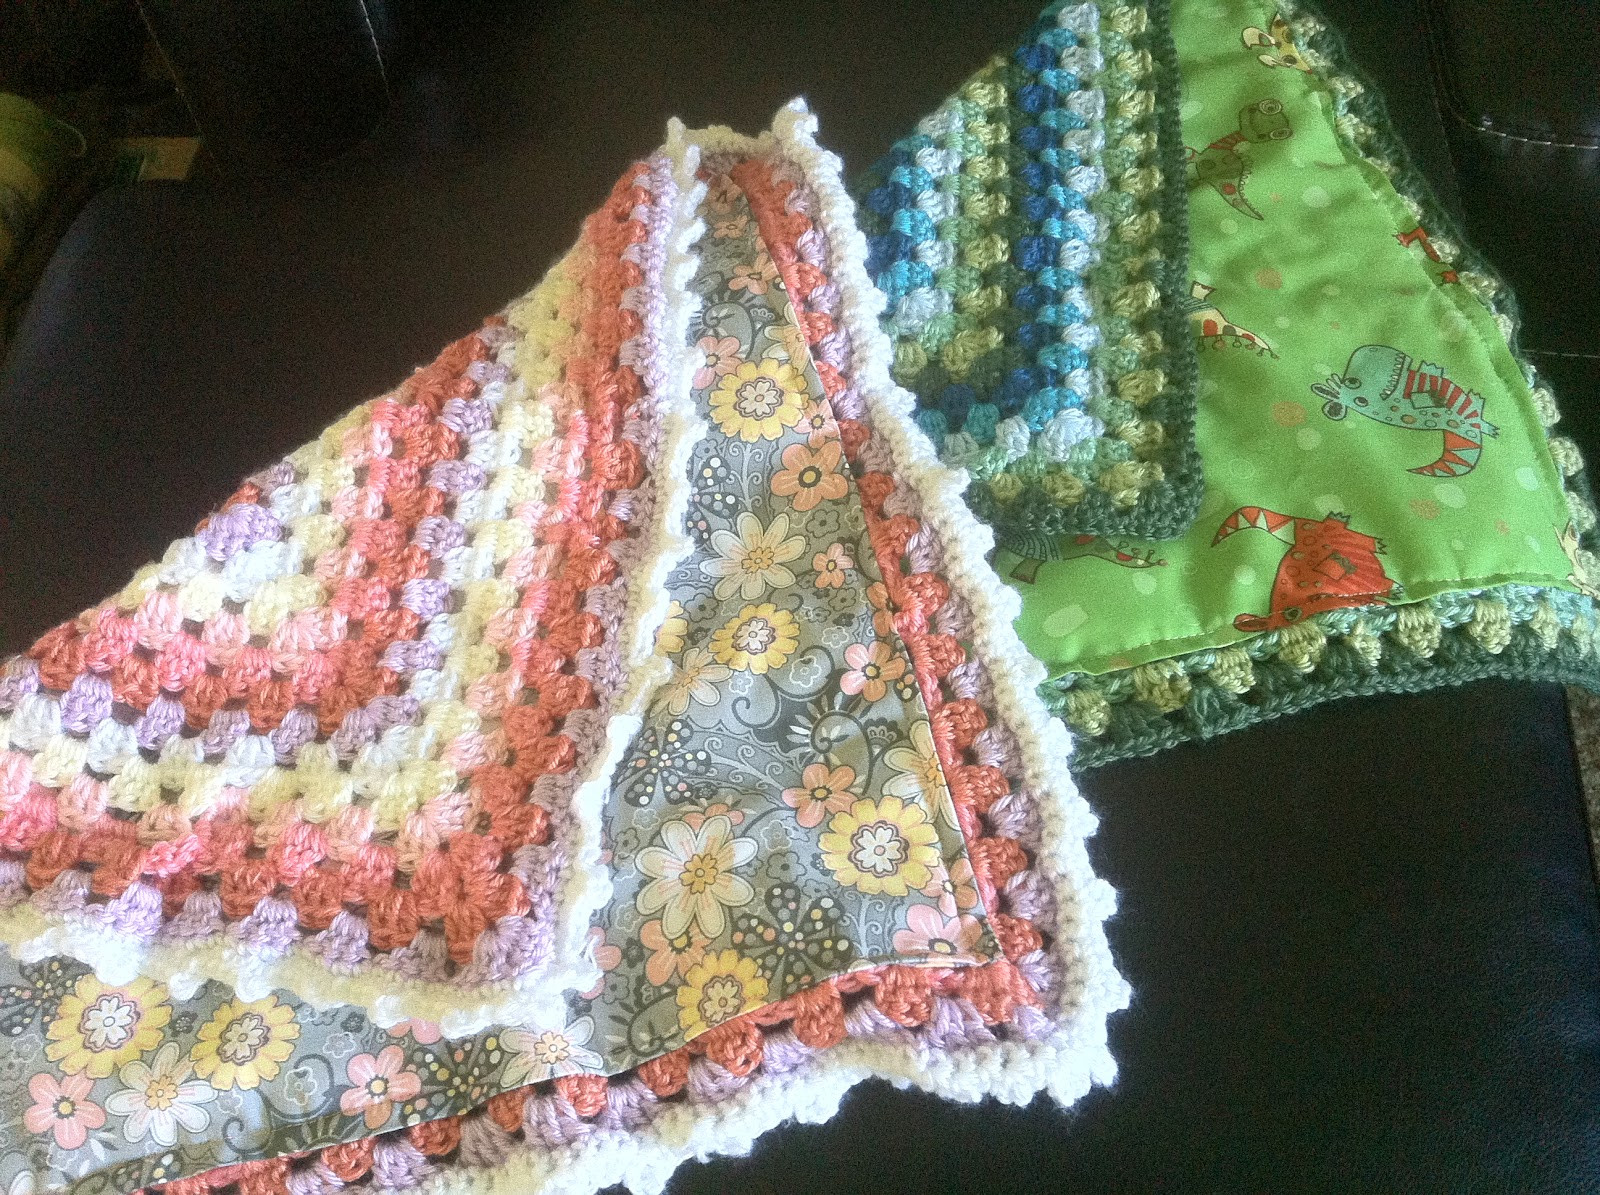 Granny Square Baby Blanket Crochet Pattern Beautiful Make A Lined Granny Lovie for Baby – Allcrafts Free Crafts Of Awesome 40 Pics Granny Square Baby Blanket Crochet Pattern